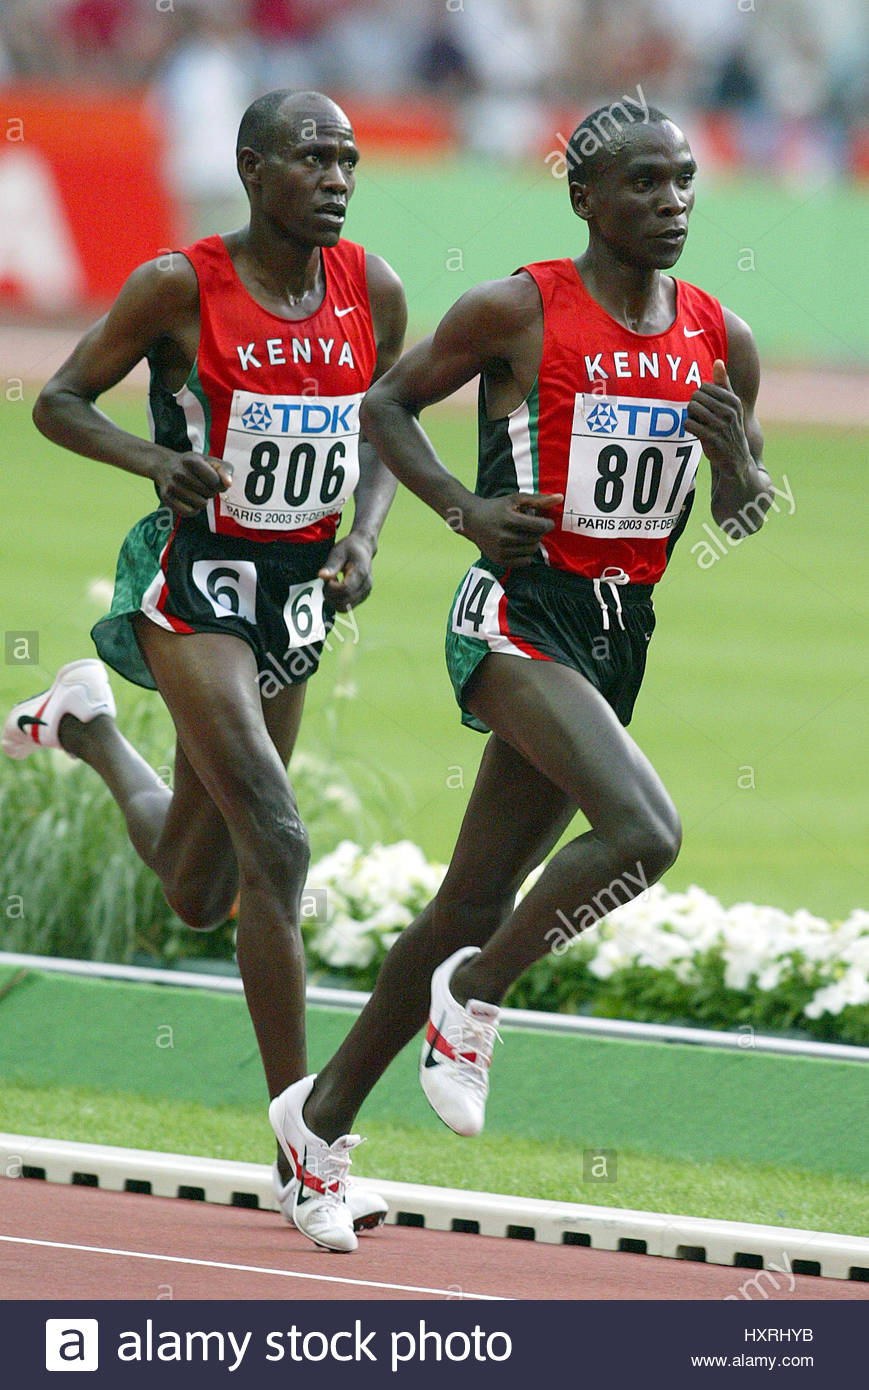 Eliud Kipchoge Stock Photos Eliud Kipchoge Stock Images   Alamy 869x1390